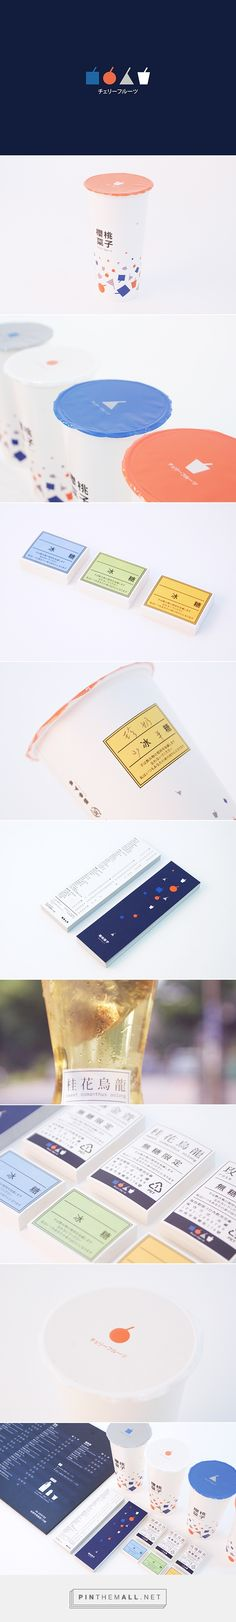 Cherries Tea House on Behance by Chou Chin-Huan Tainanshih, Taiwan curated by Packaging Diva PD. A tea shop in Tainan. New corporate identity system for packaging.